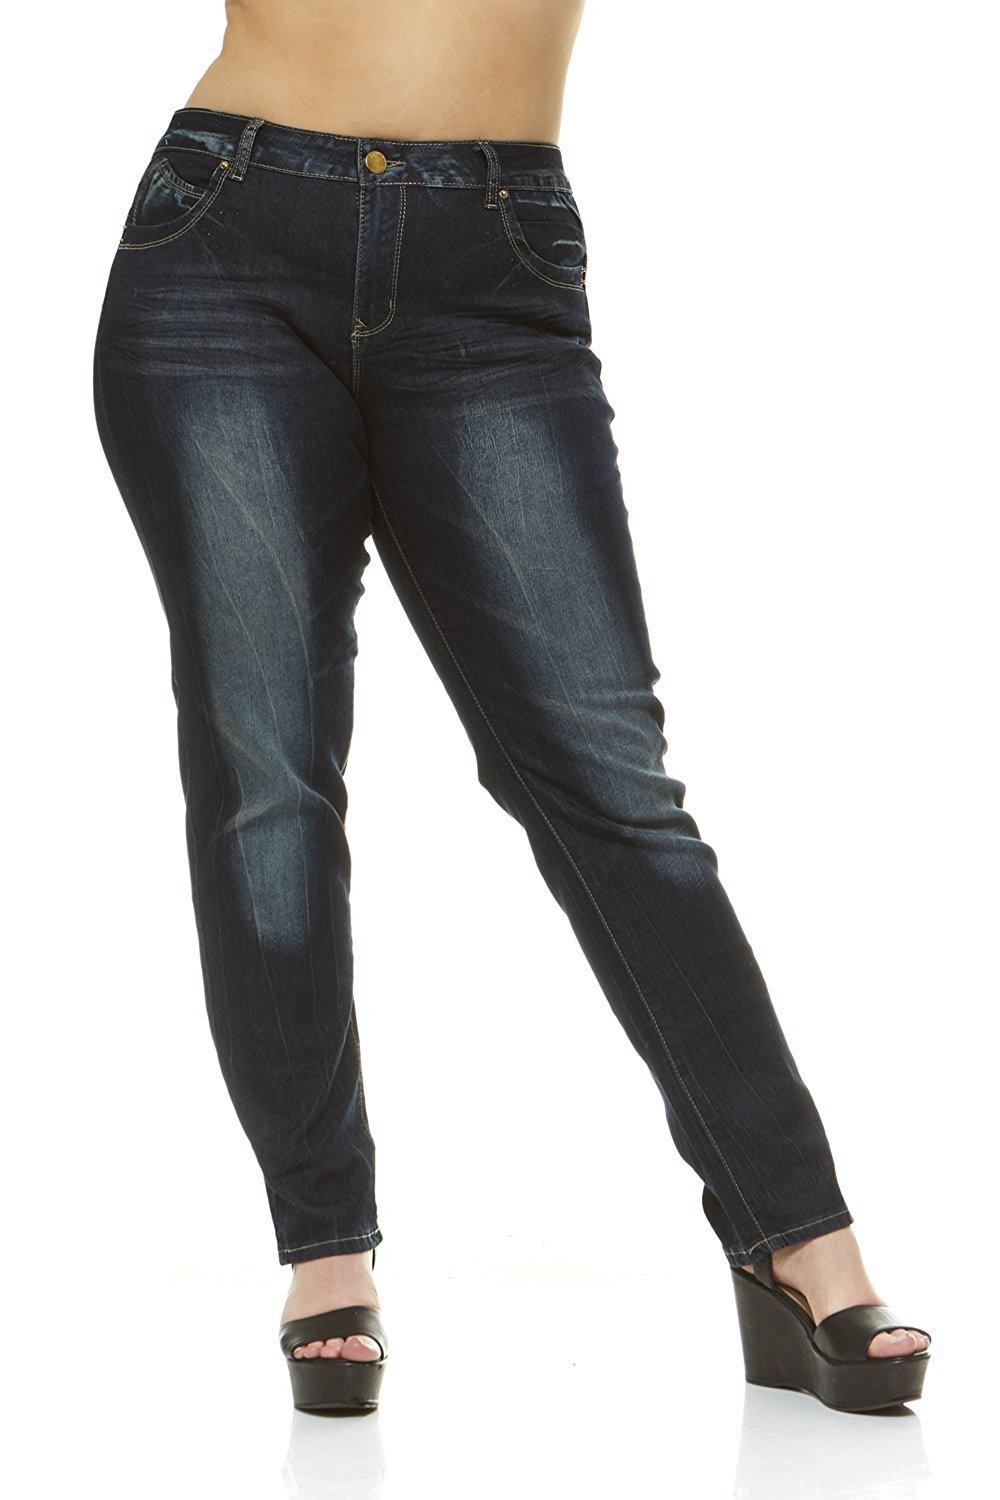 Classic 5 Pocket Slim Fit Skinny Stretch Jeans For Women Plus Size 4 Color Choices